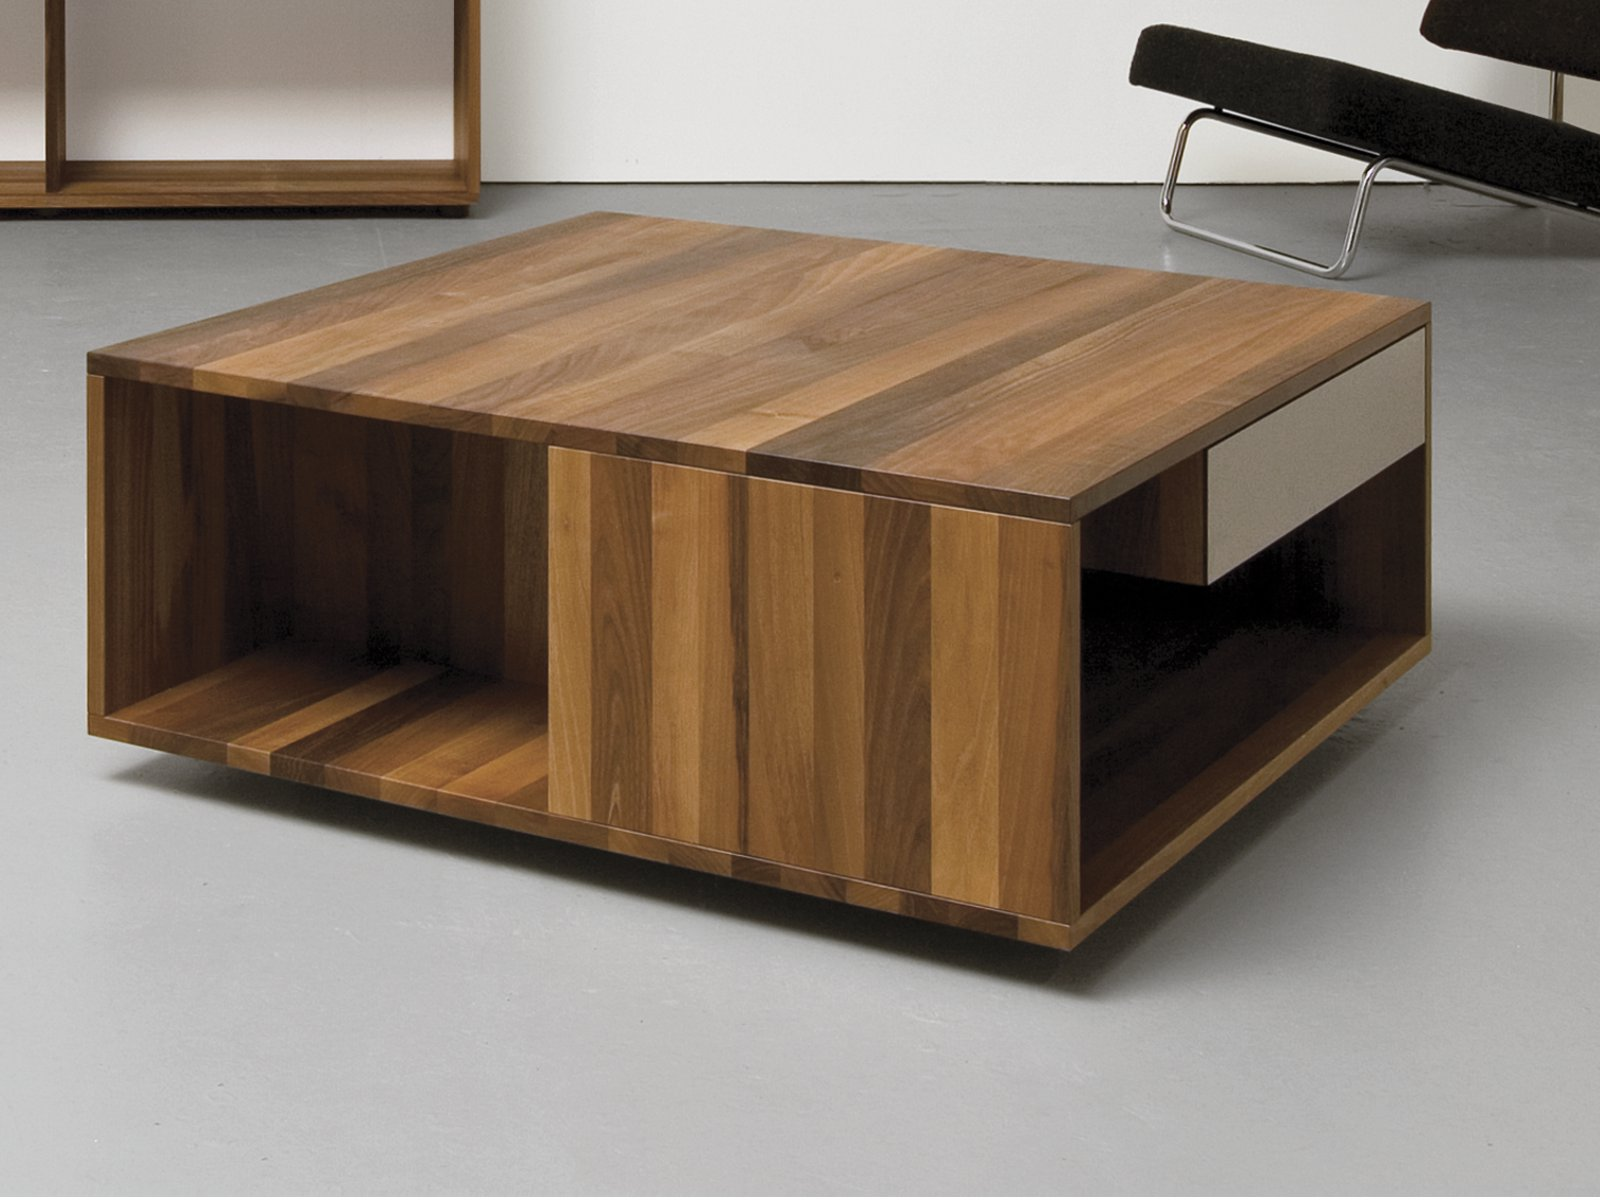 Low coffee table with casters loft by sanktjohanser design matthias hubert - Table basse atelier loft ...